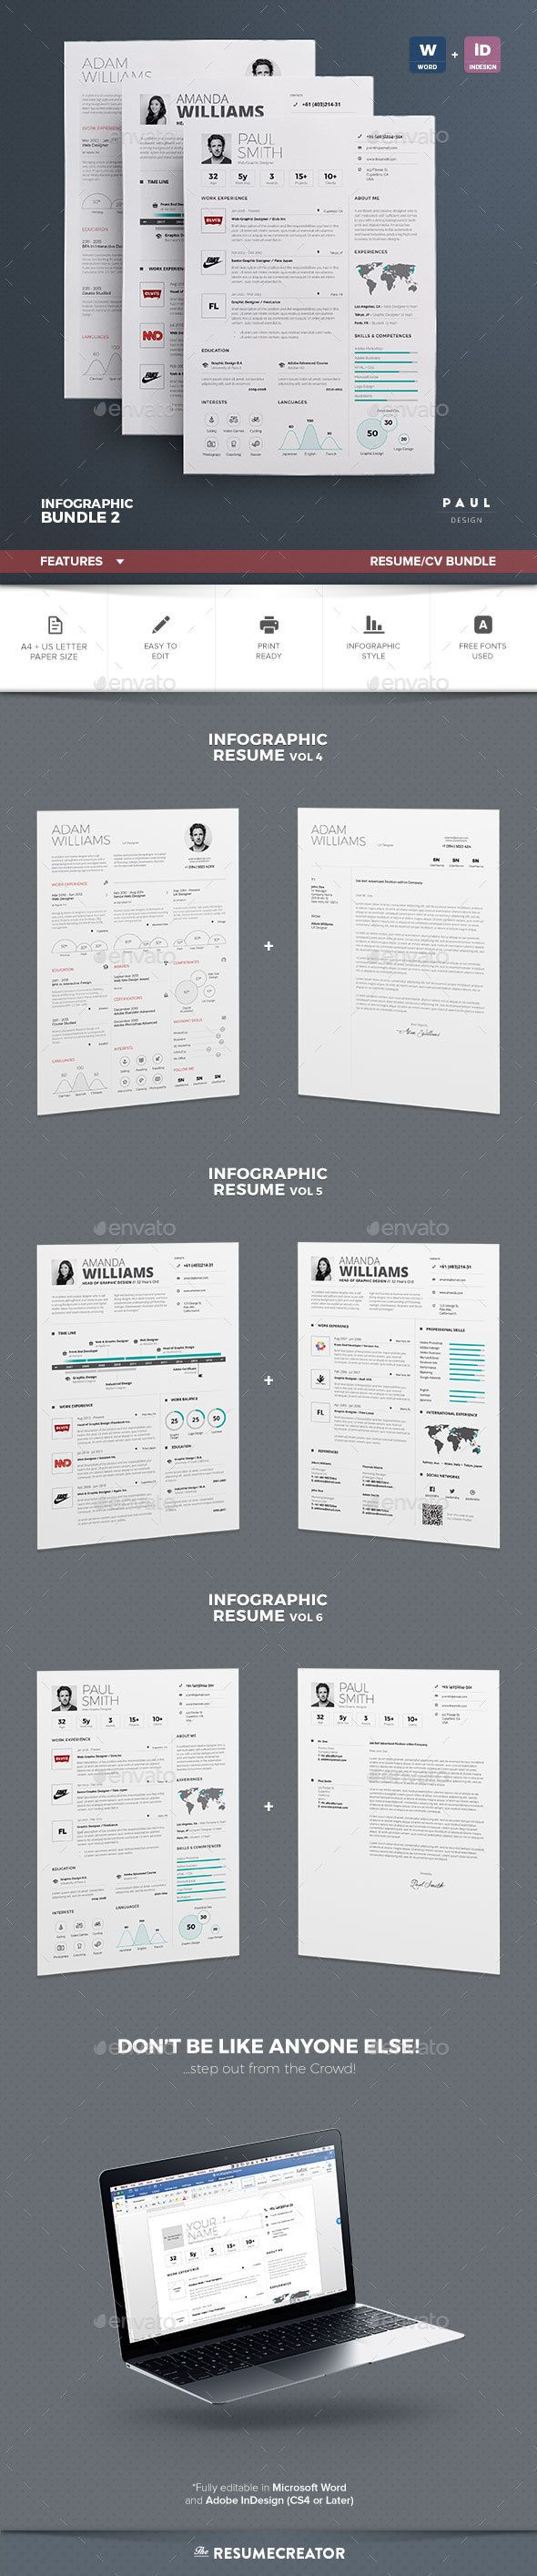 Infographic Resume Templates  Word  SoftwaremonsterInfo